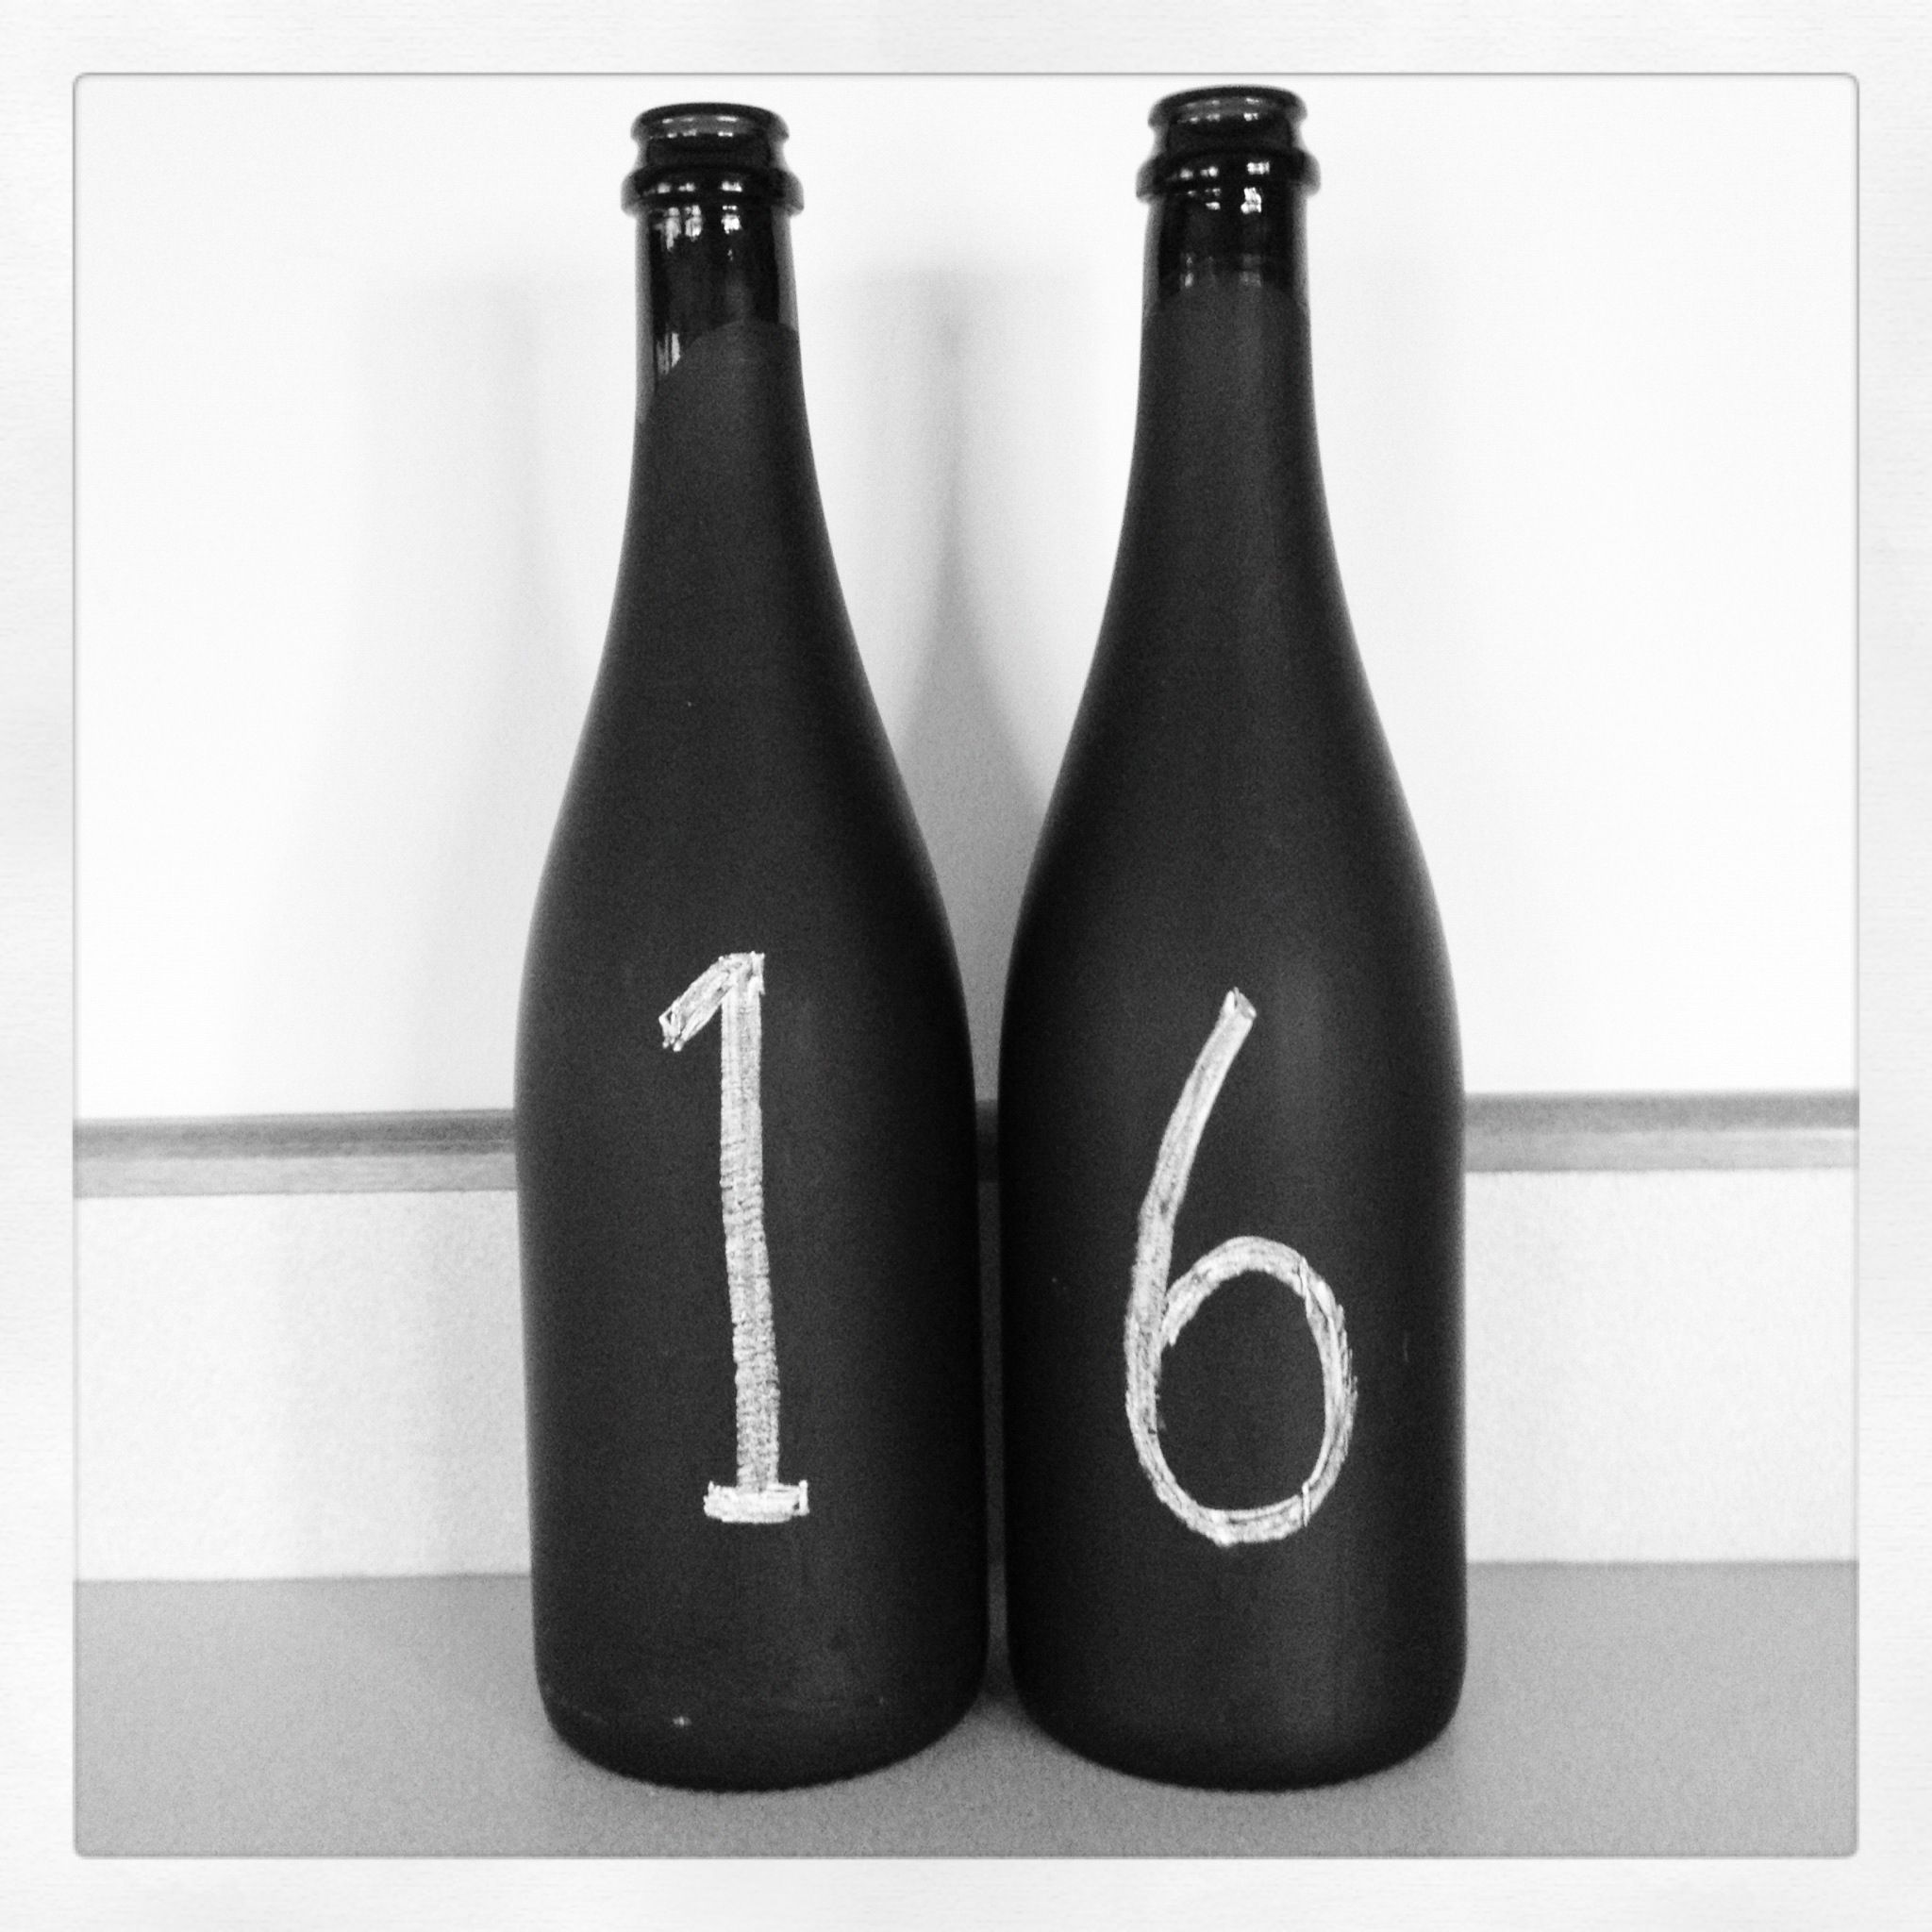 Freixenet Sparkling Wine Comes In Black Frosted Glass Bottles